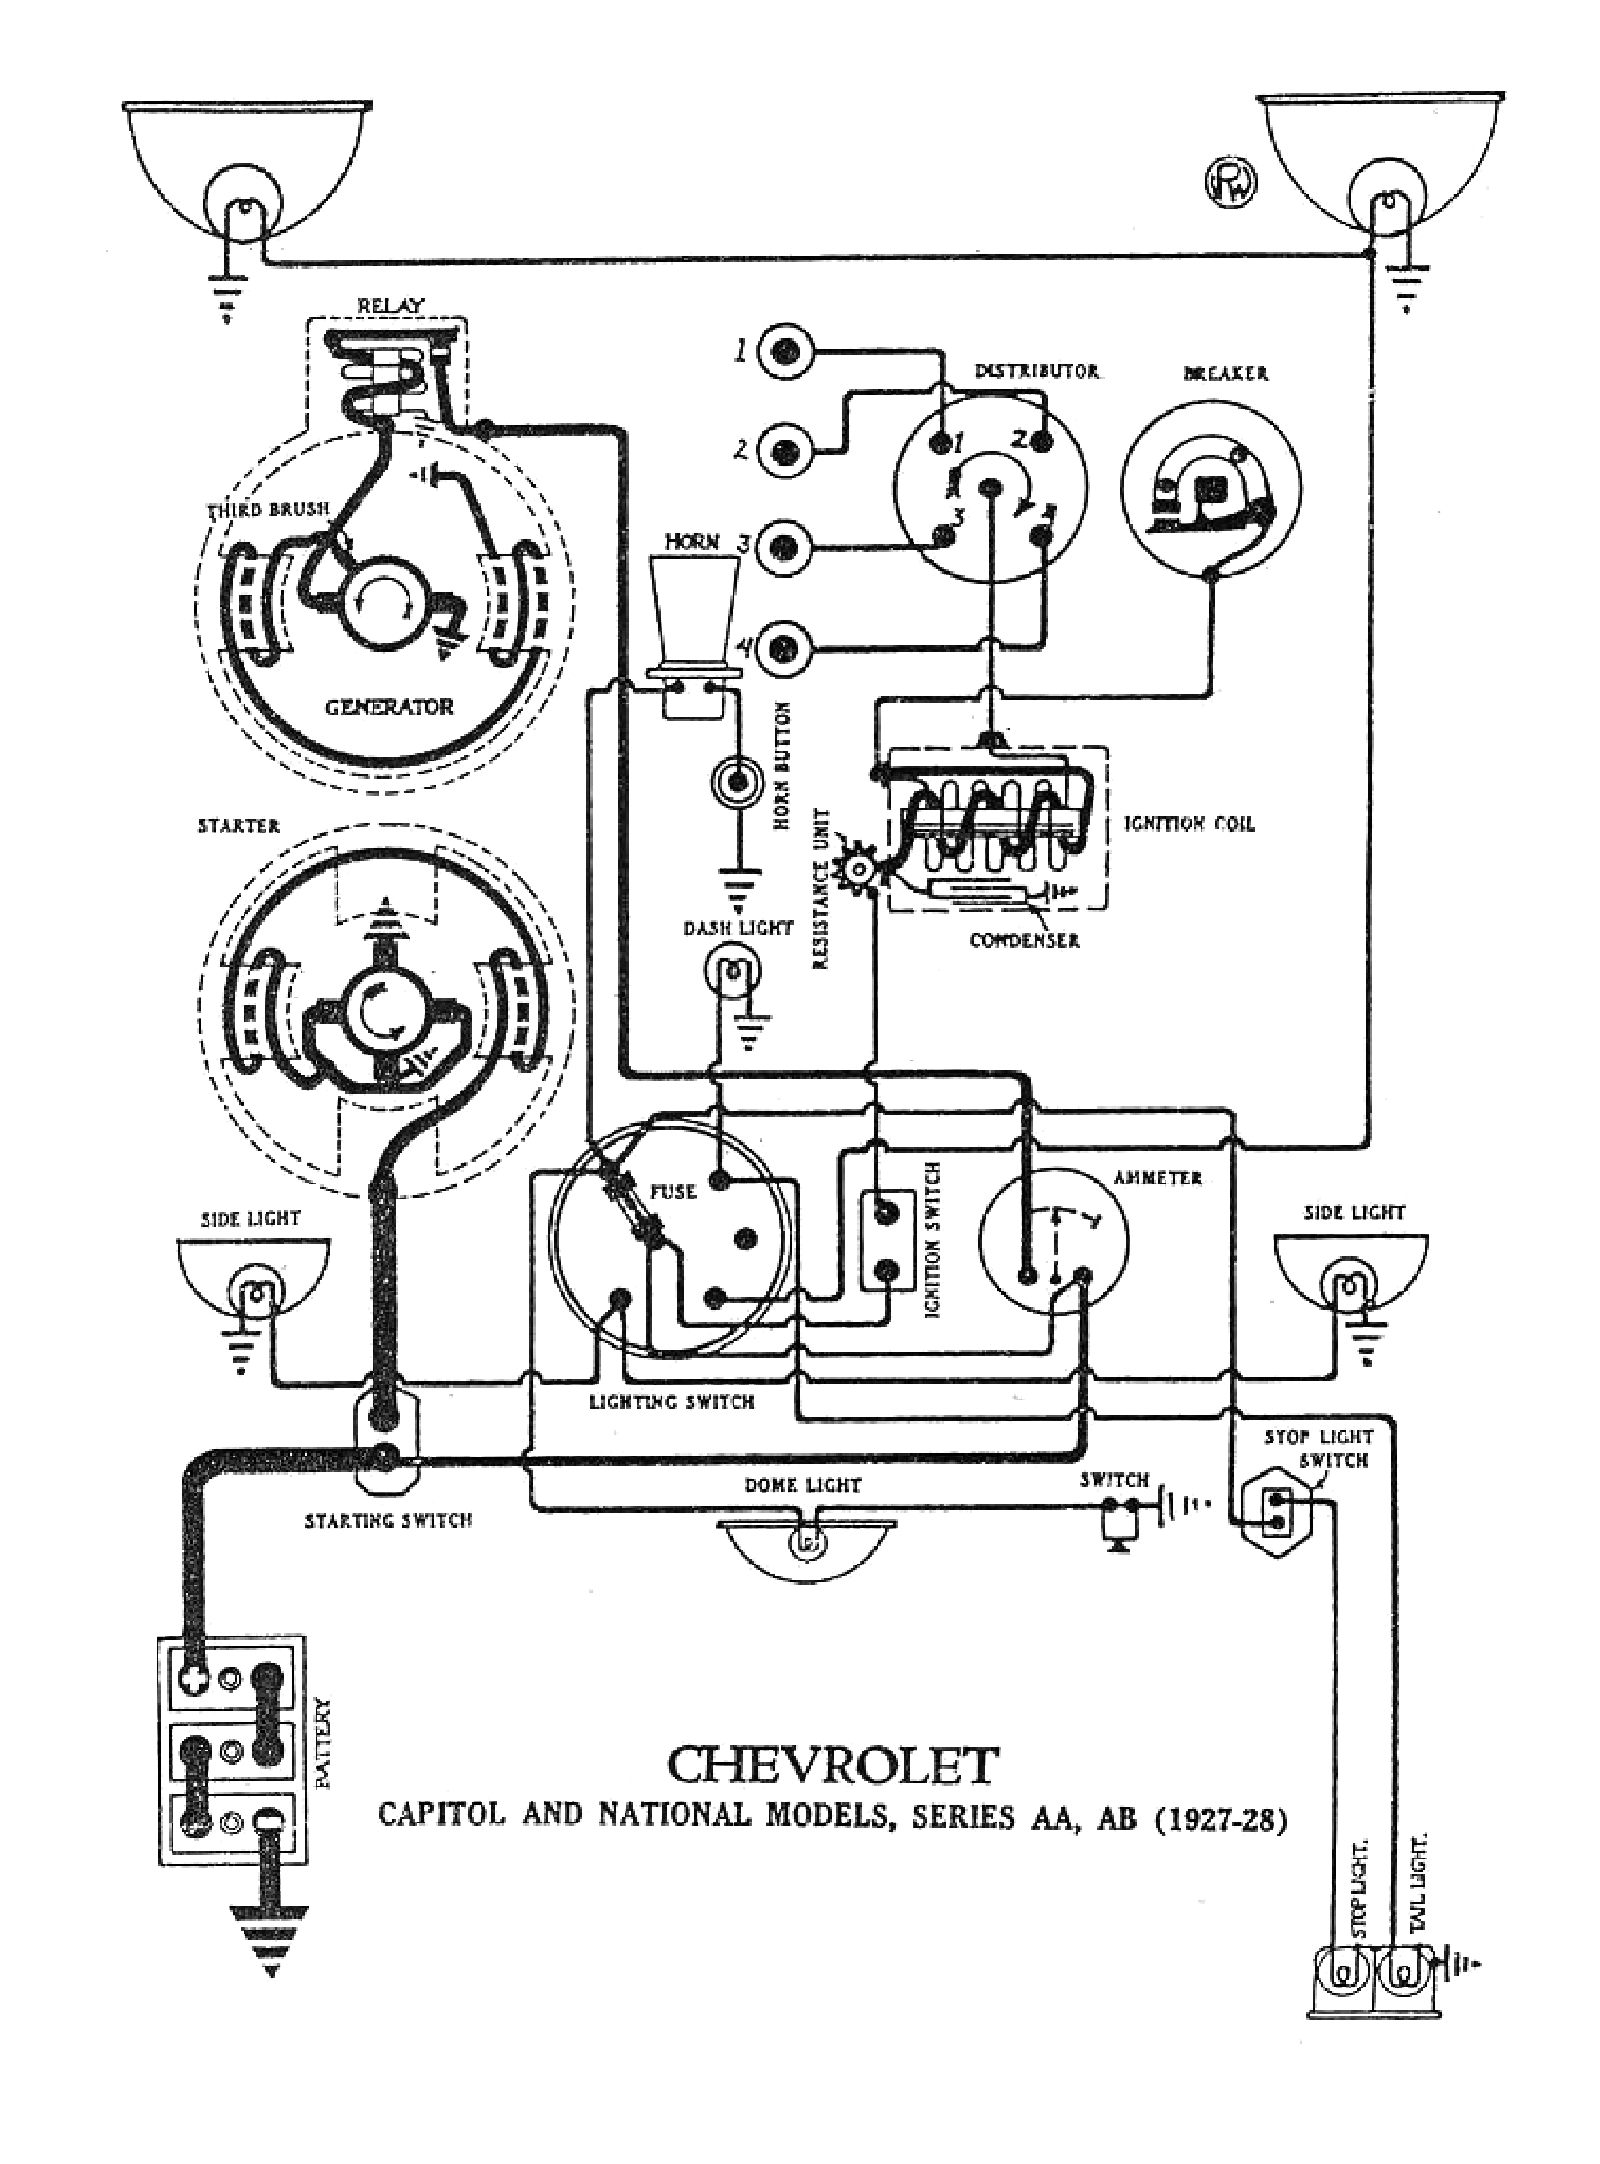 2728wiring chevy wiring diagrams ford model a wiring diagram at readyjetset.co